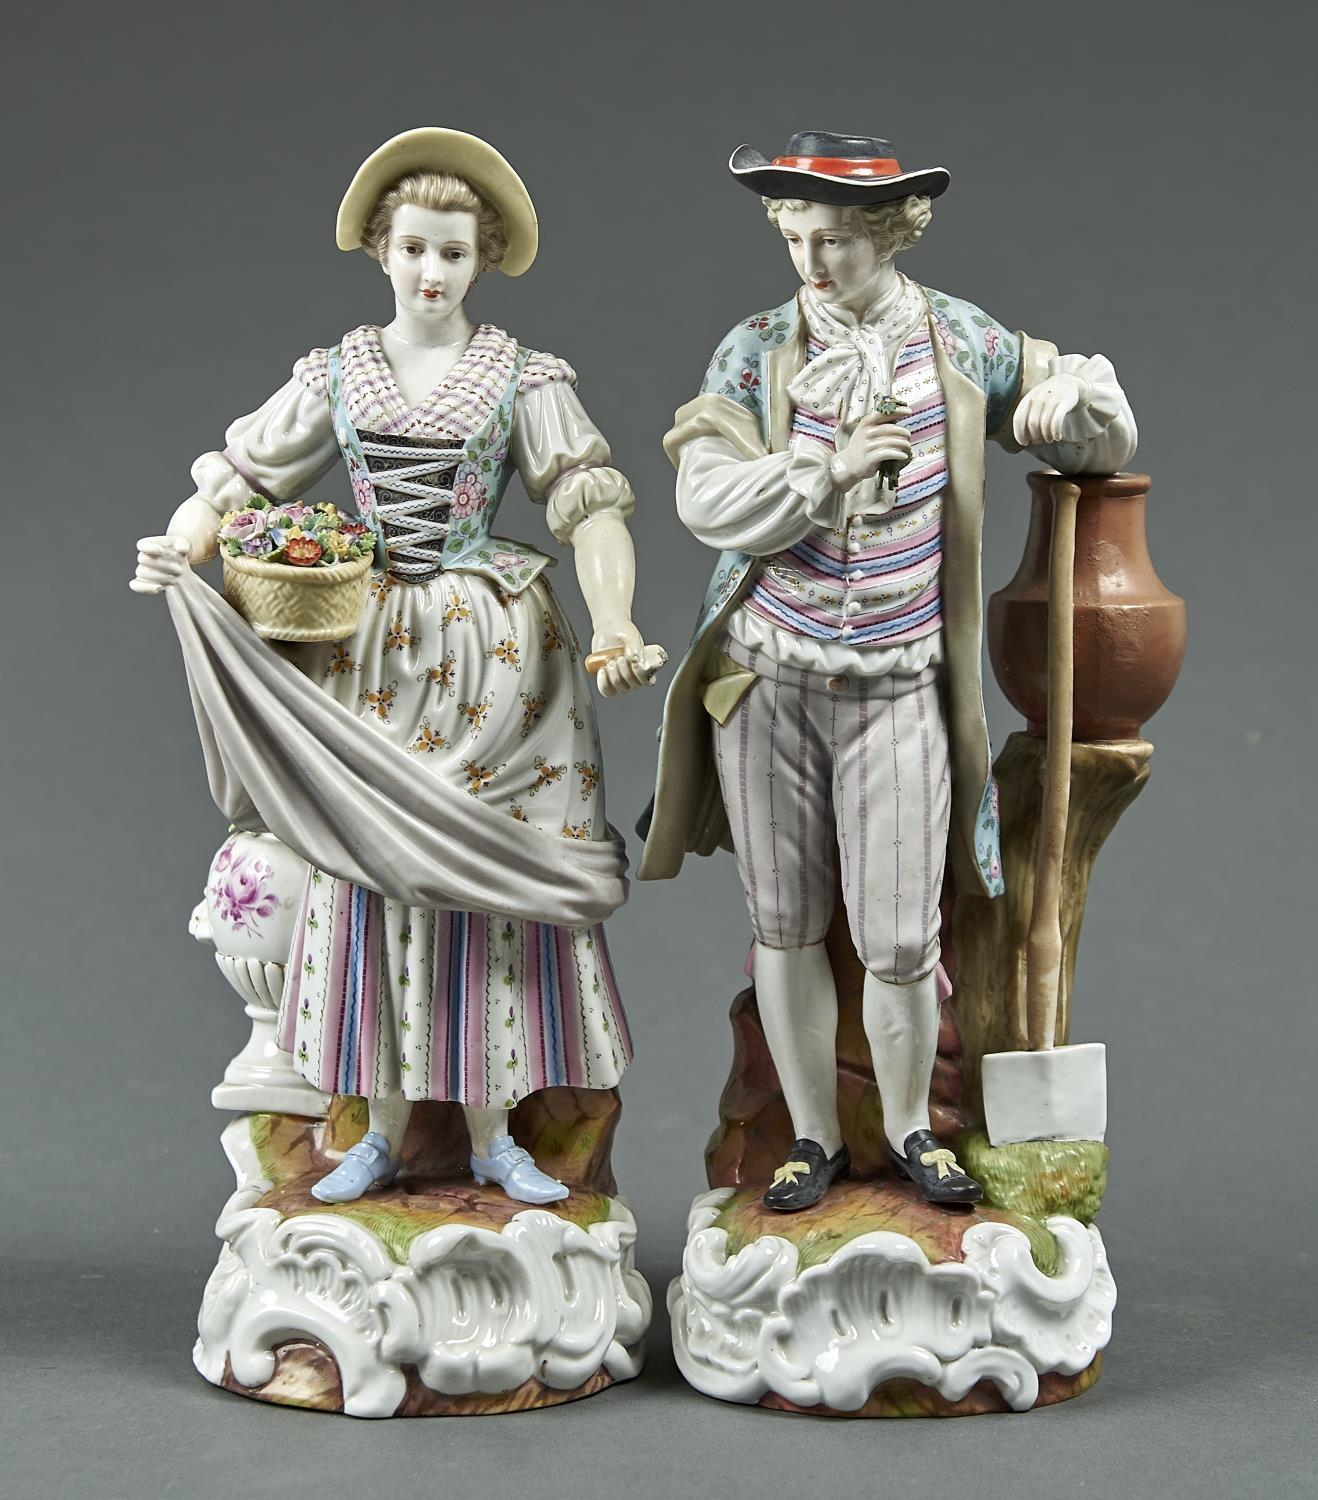 A PAIR OF SITZENDORF FIGURES OF GARDENERS, EARLY 20TH C, AS A YOUNG MAN HOLDING A POSY AND RESTING